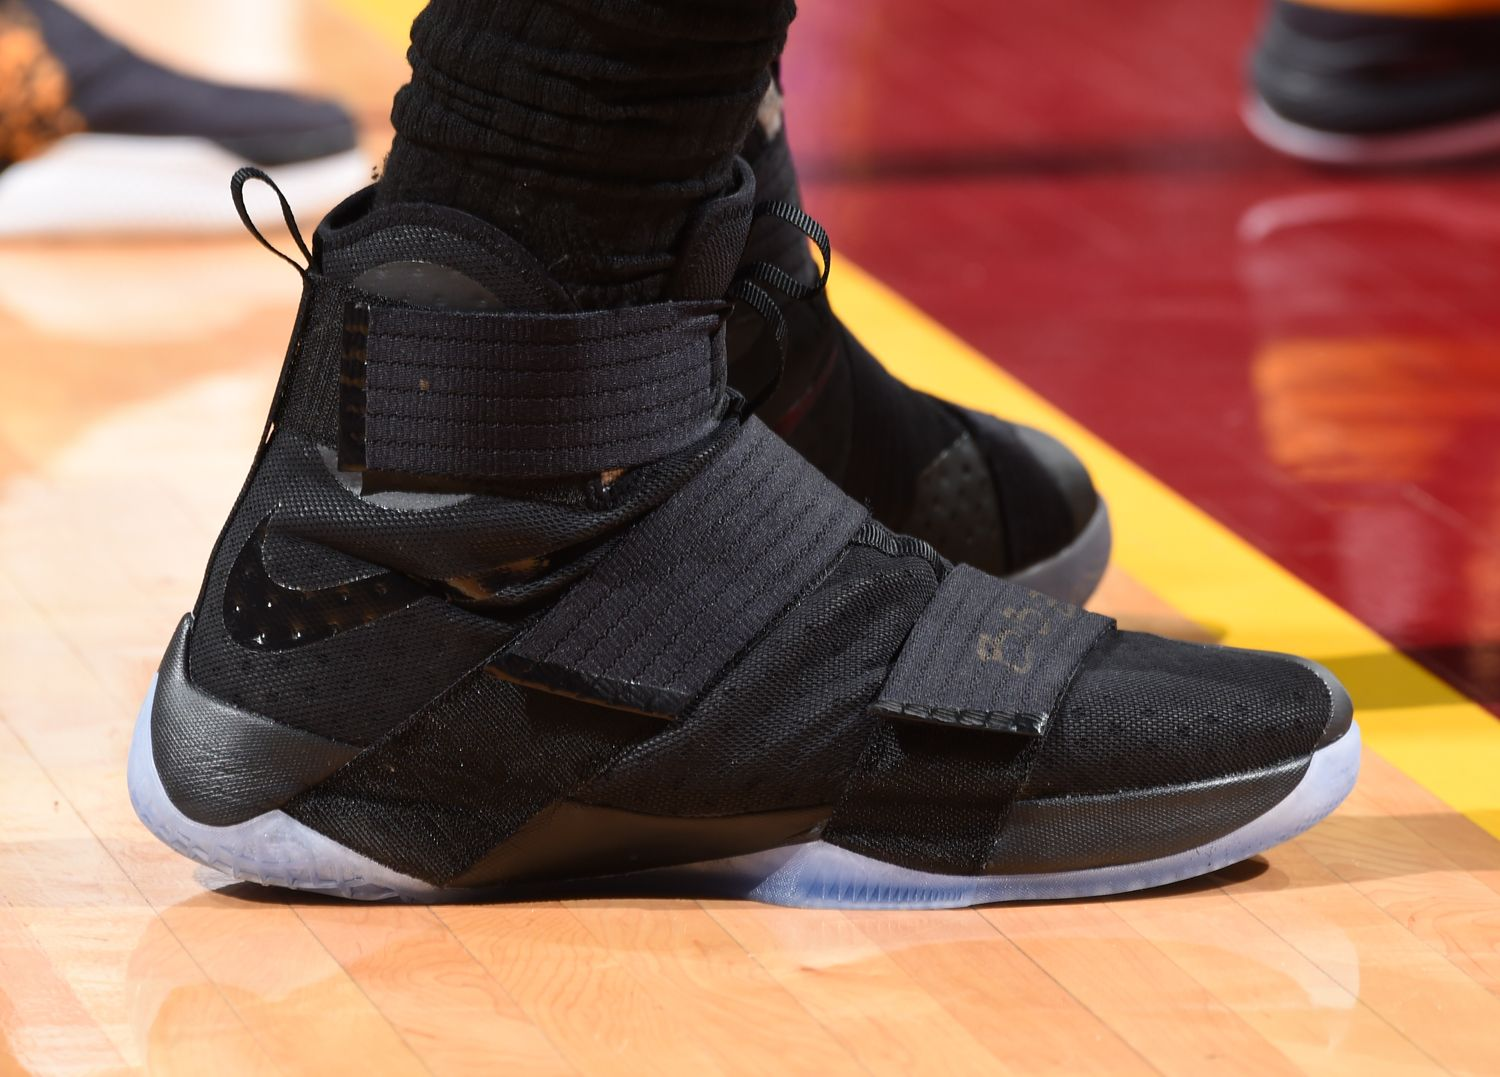 CLEVELAND, OH - JUNE 8: The shoes of LeBron James #23 of the